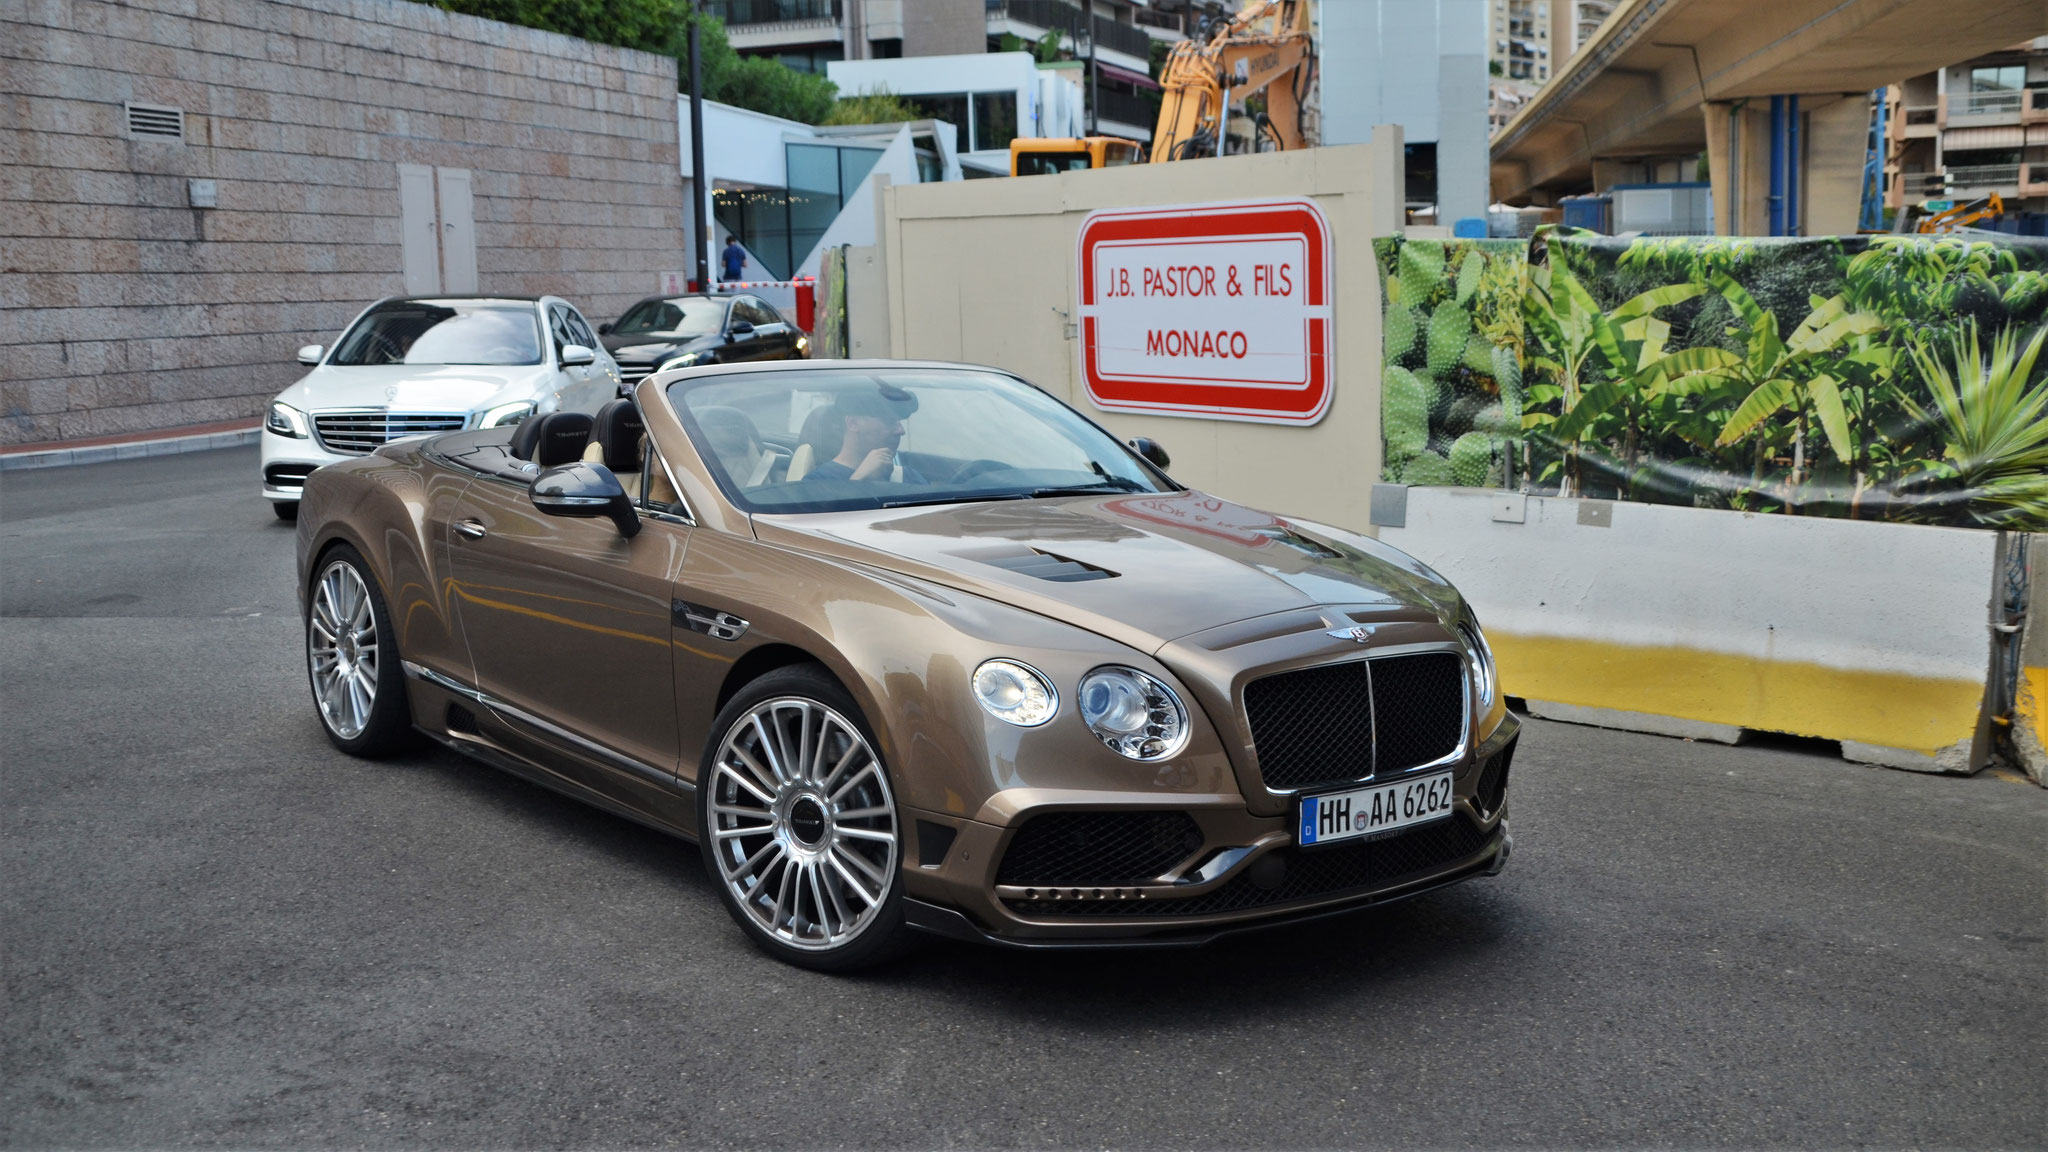 Mansory Continental GTC - HH-AA-6262